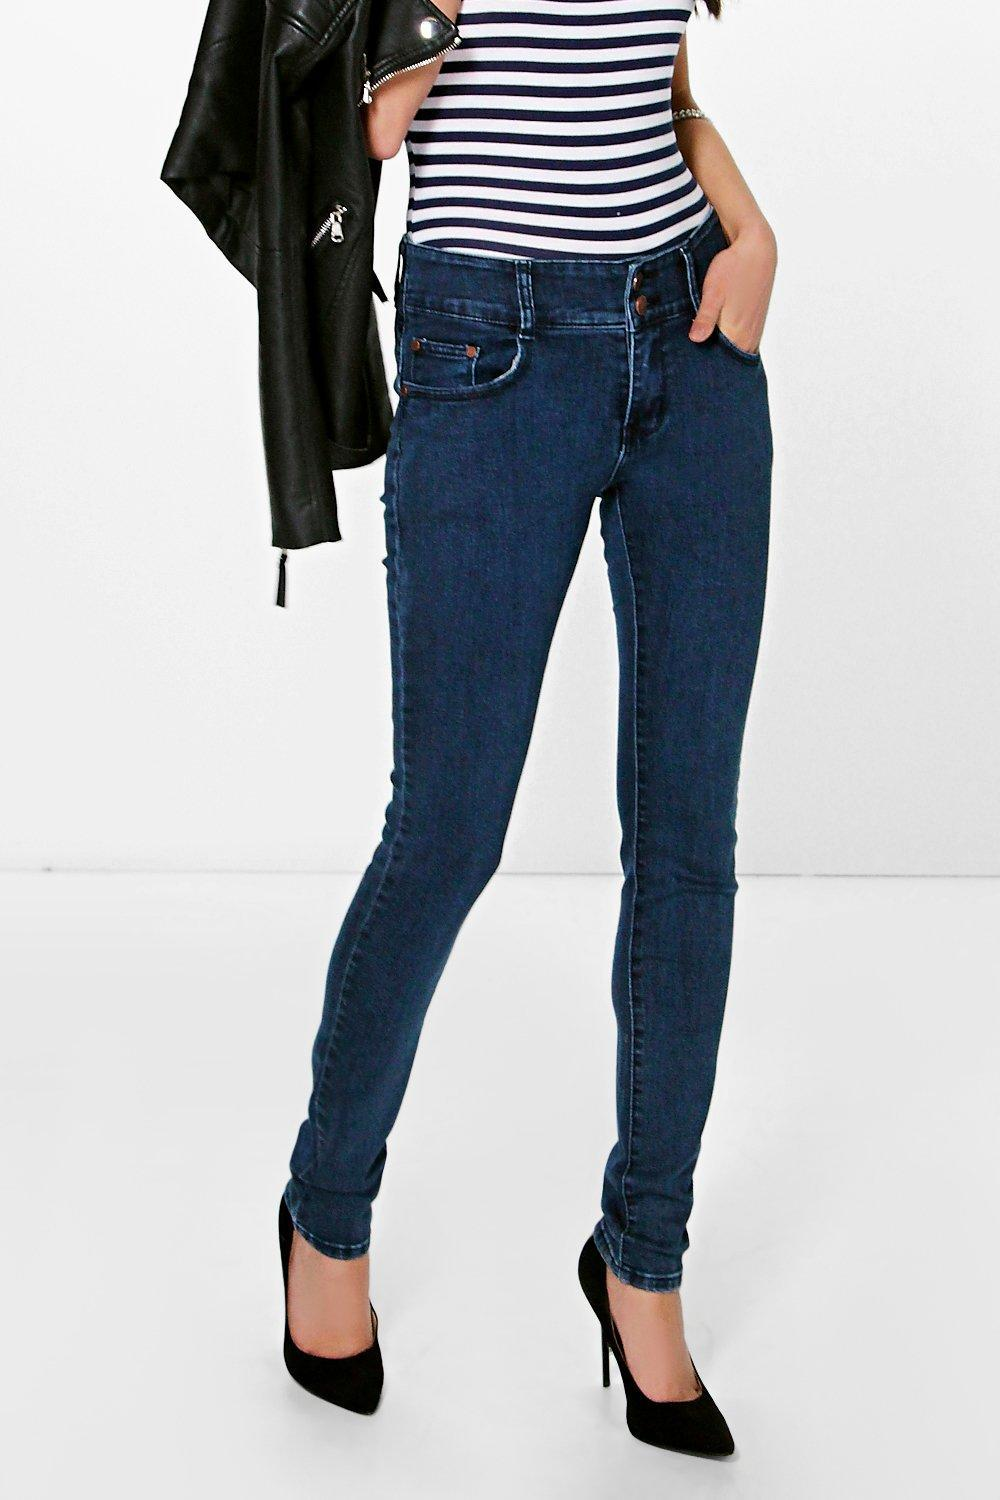 High Rise Skinny Jeans Indigo - style: skinny leg; length: standard; pattern: plain; pocket detail: traditional 5 pocket; waist: mid/regular rise; predominant colour: navy; occasions: casual; fibres: cotton - 100%; jeans detail: dark wash; texture group: denim; pattern type: fabric; season: s/s 2016; wardrobe: basic